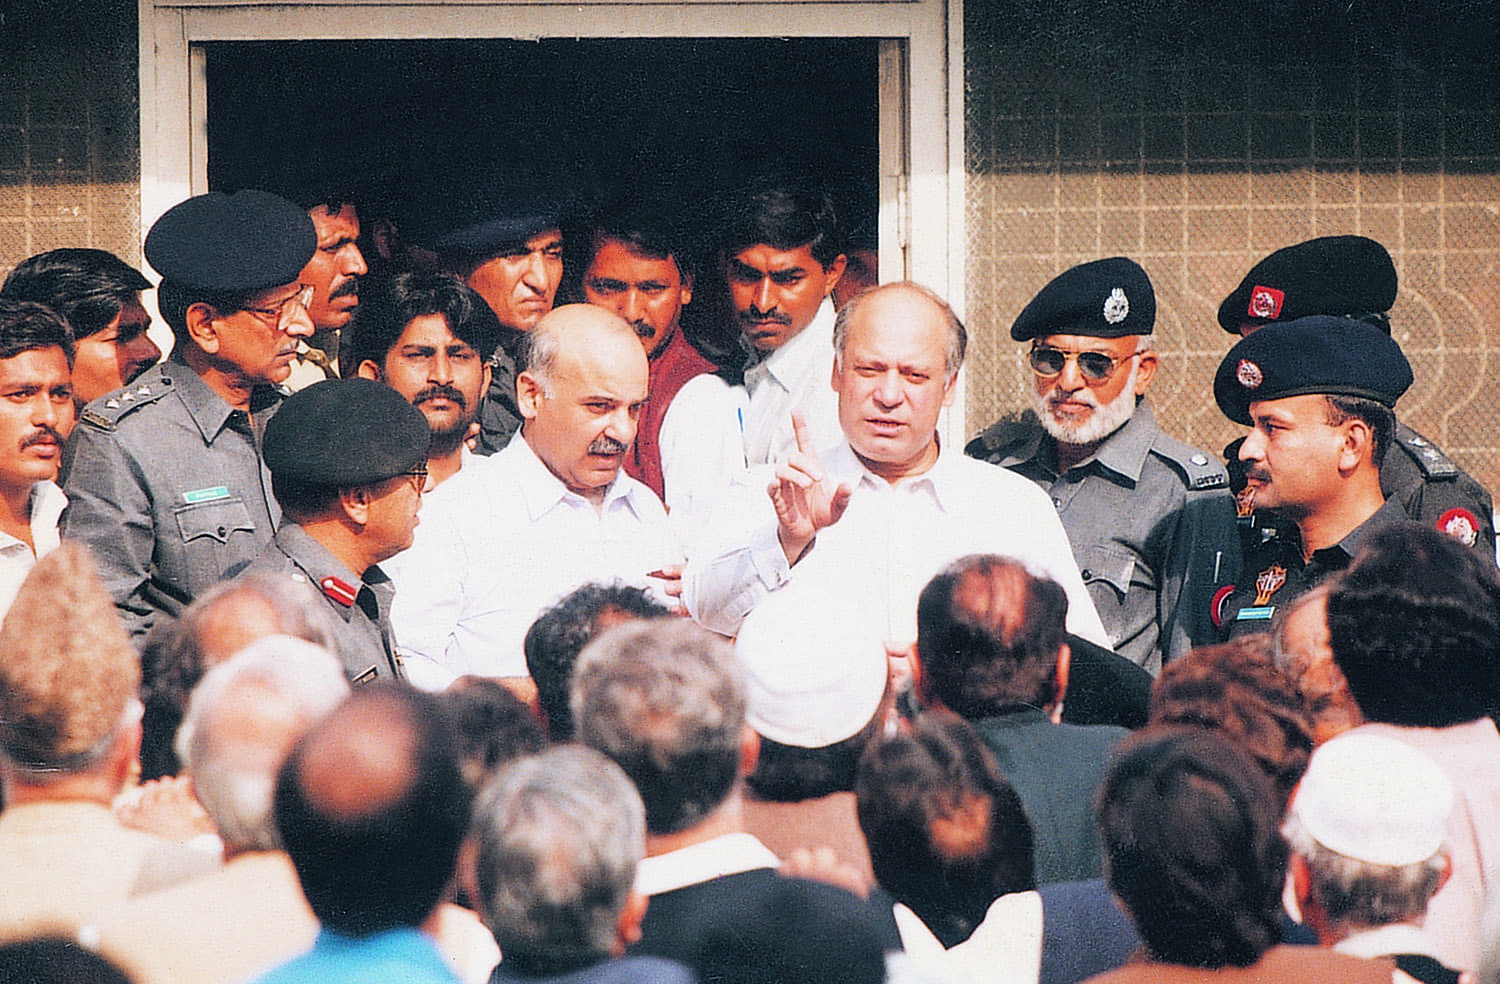 Deposed for the second time, Nawaz Sharif, with his brother Shahbaz Sharif, is seen at the entrance of Anti-terrorism Court No 1 in Karachi in December 1999 when he was tried for 'kidnapping, attempted murder, hijacking and terrorism'. It was the trial that led first to his conviction and a life sentence, and subsequently to the infamous agreement under which the Sharif family remained exiled in Saudi Arabia for about a decade.